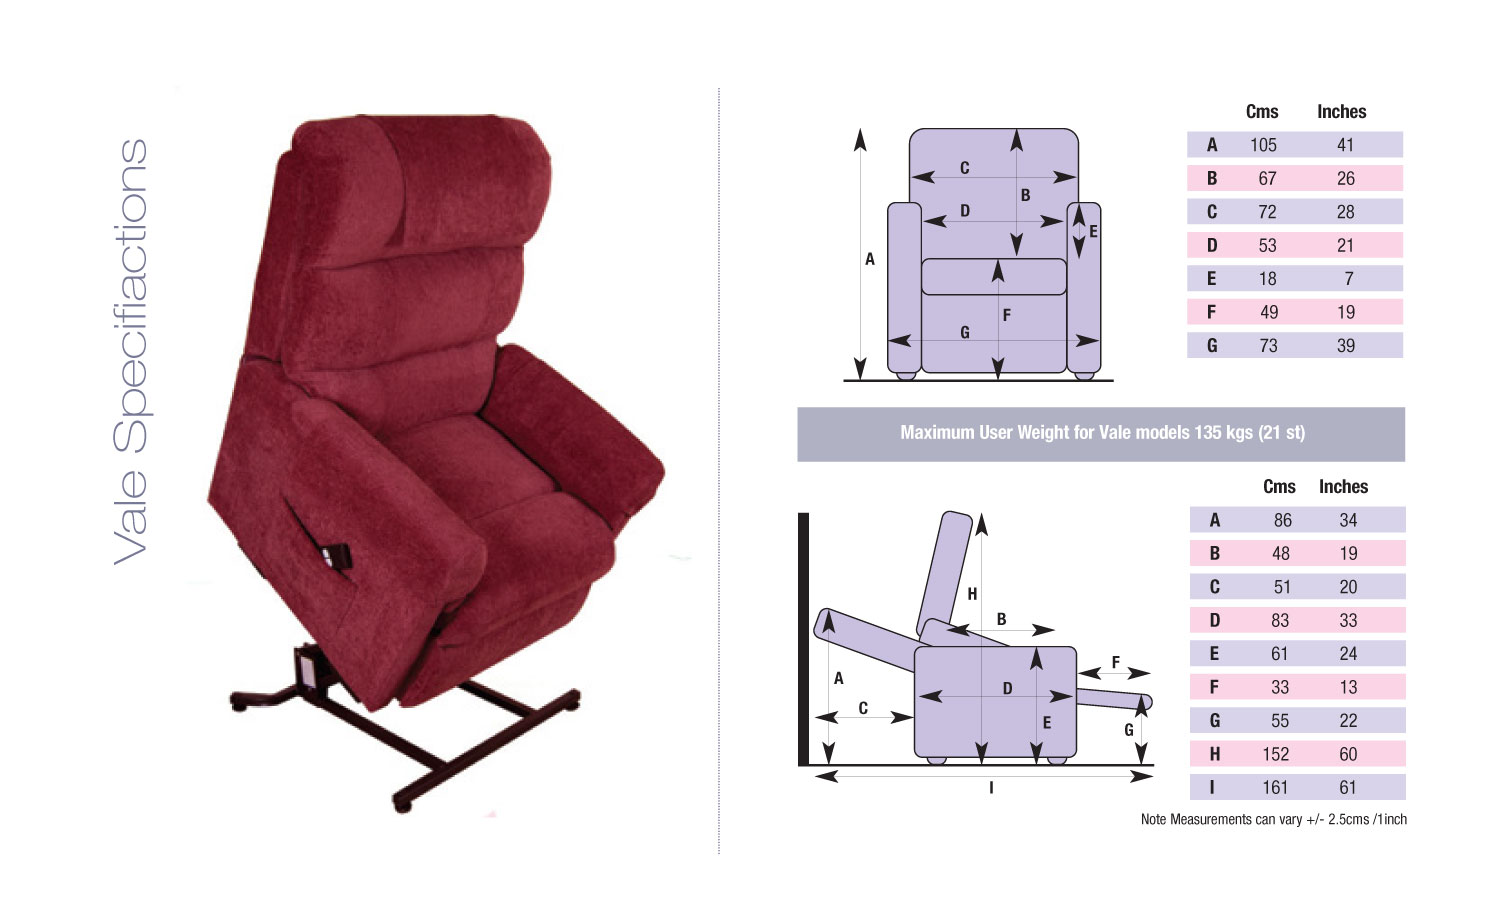 ROAM-RECLINER-CHAIRS-2a